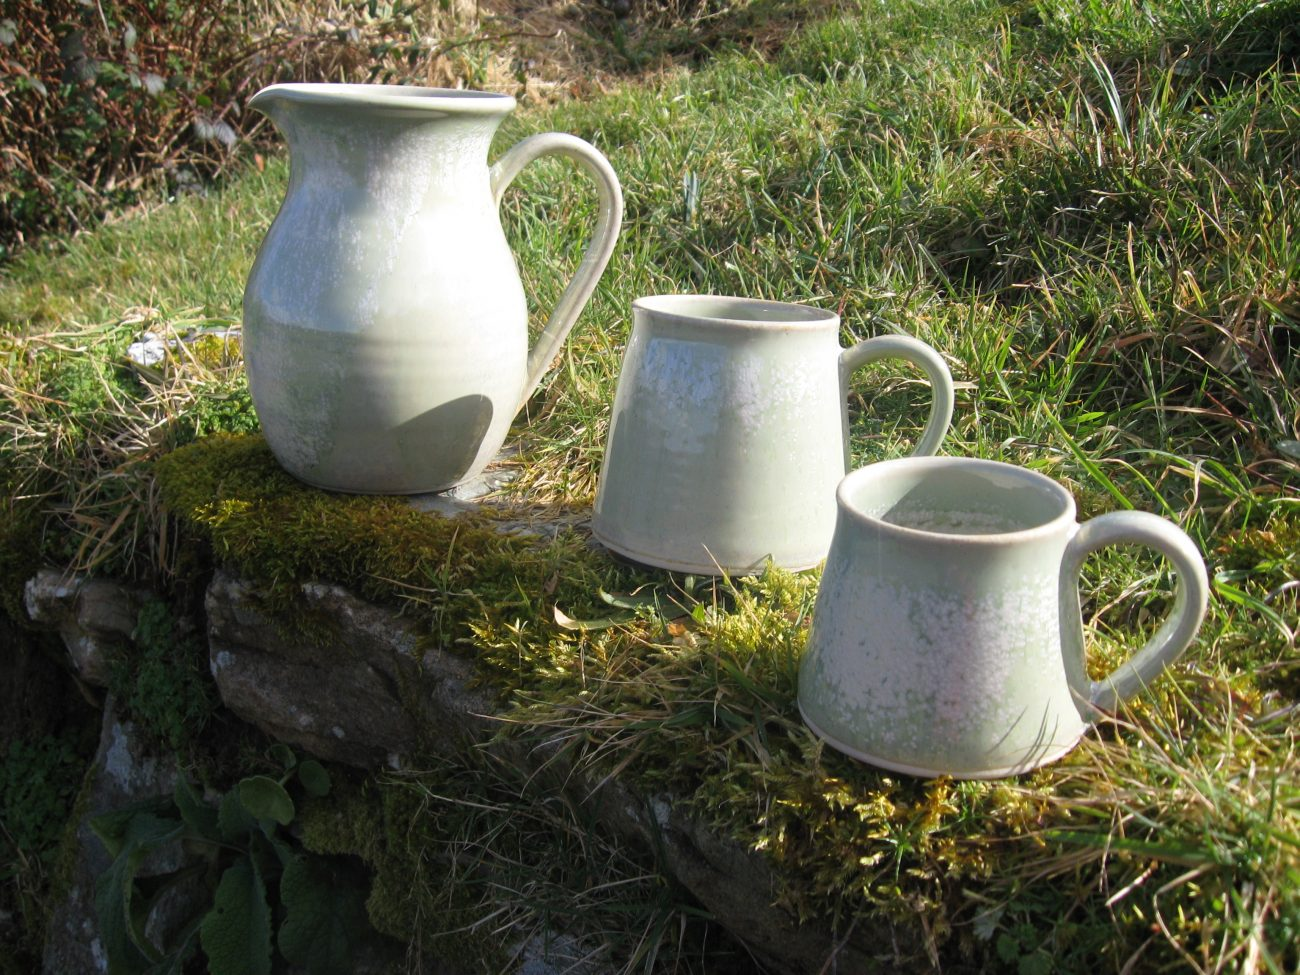 Stoneware pottery handmade in West Cork, Ireland